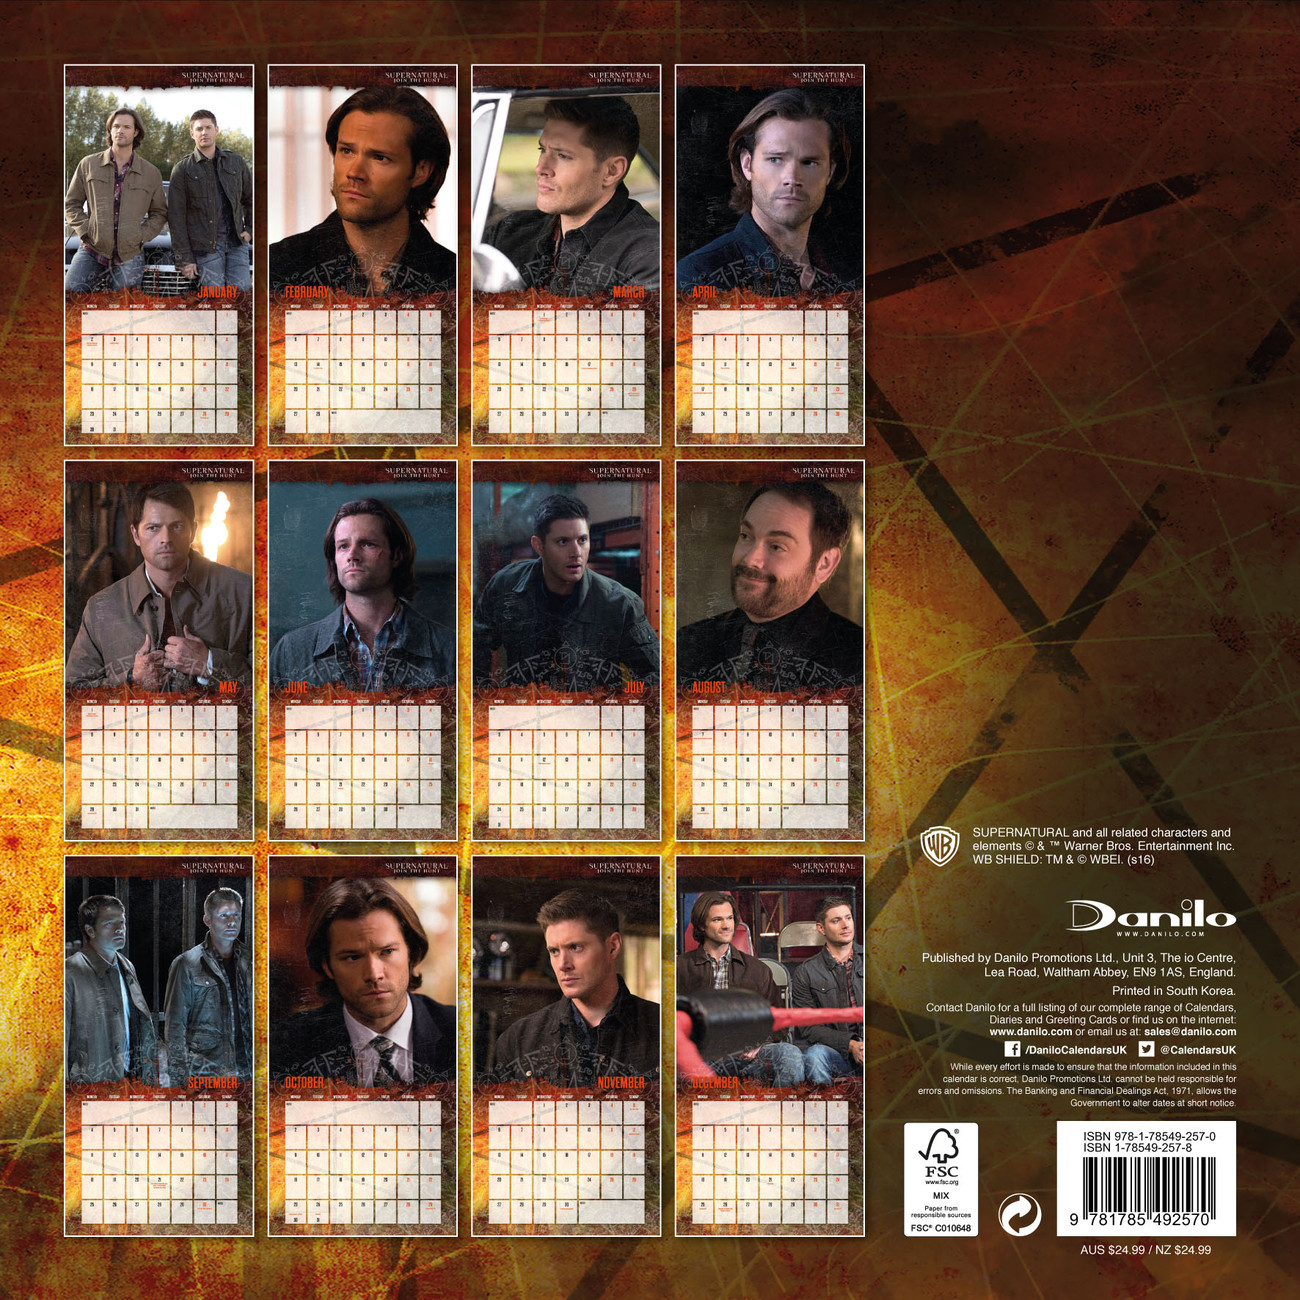 Supernatural Calendar 2020 Supernatural   Calendars 2020 on UKposters/Abposters.com